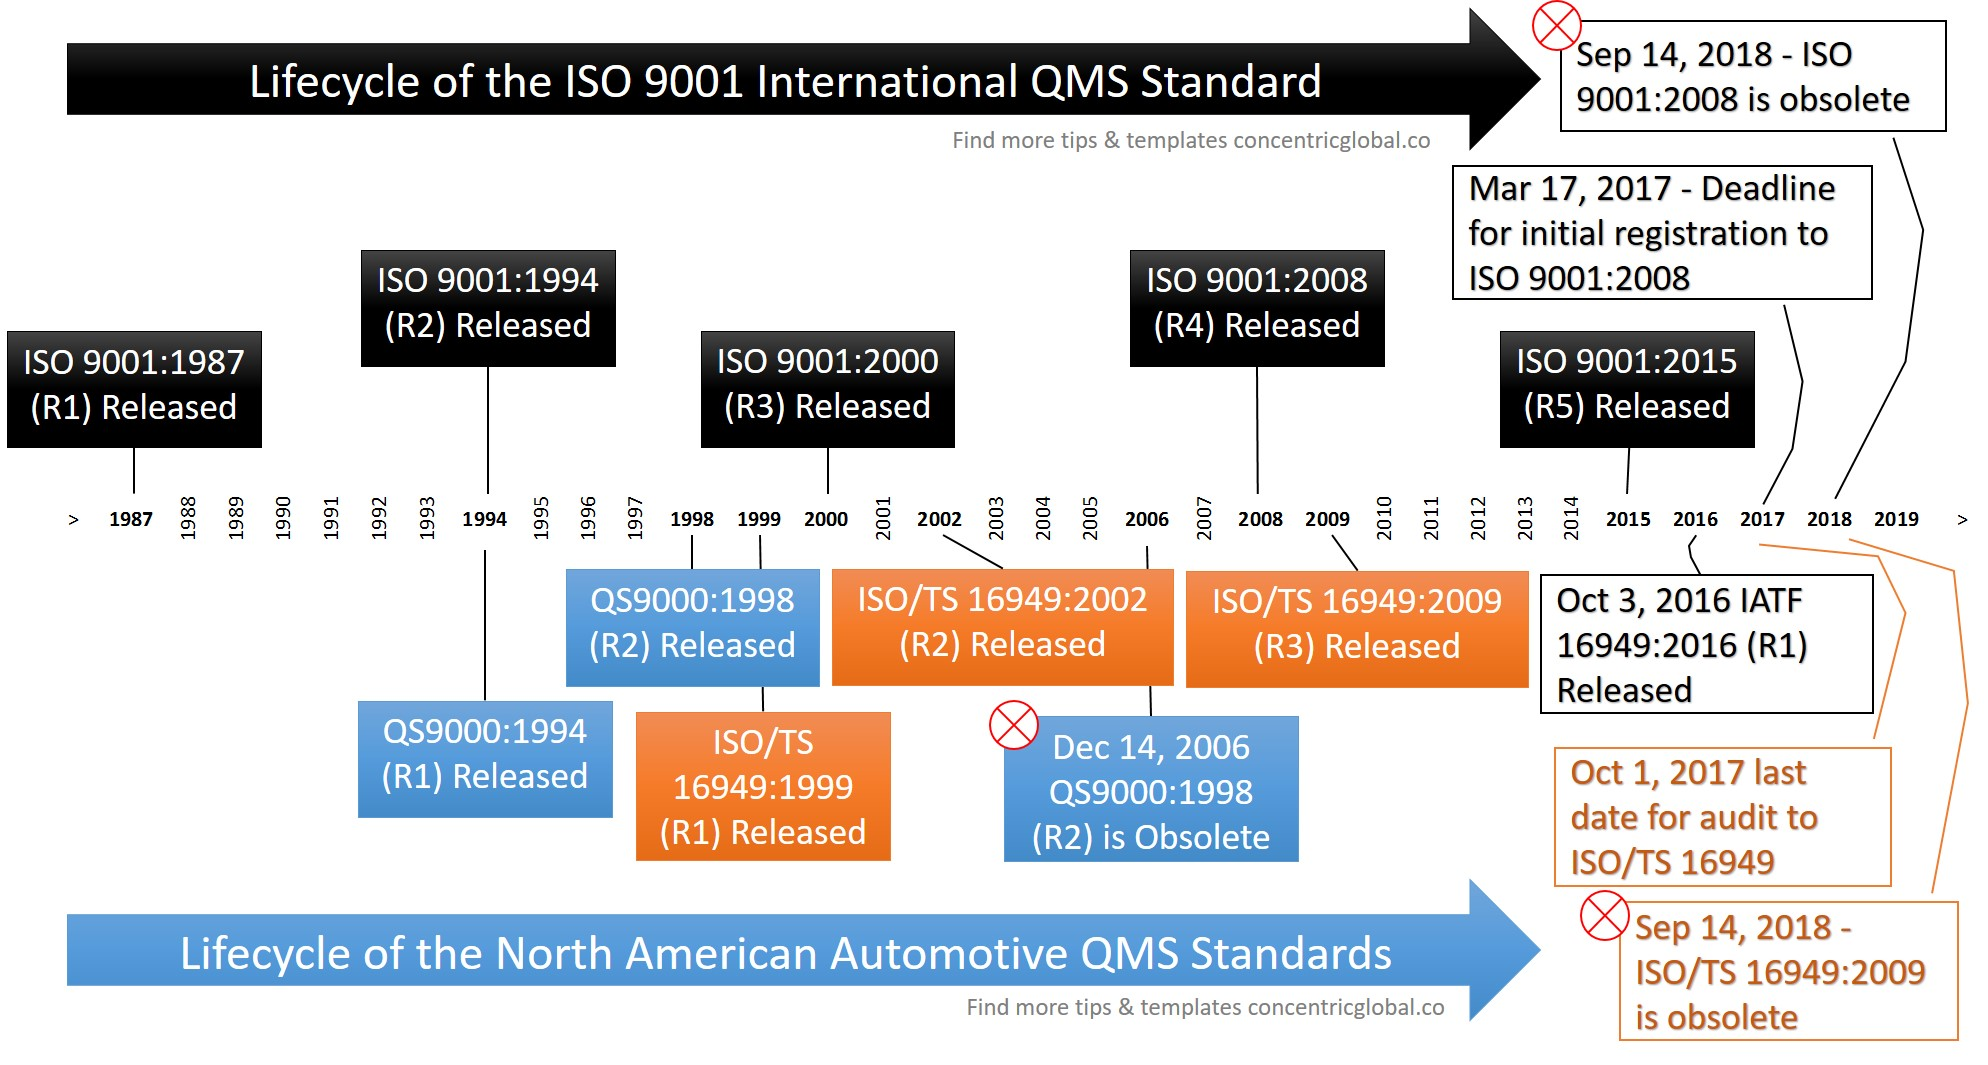 Timeline & Milestones of ISO 9001 & Auto QMS Standards